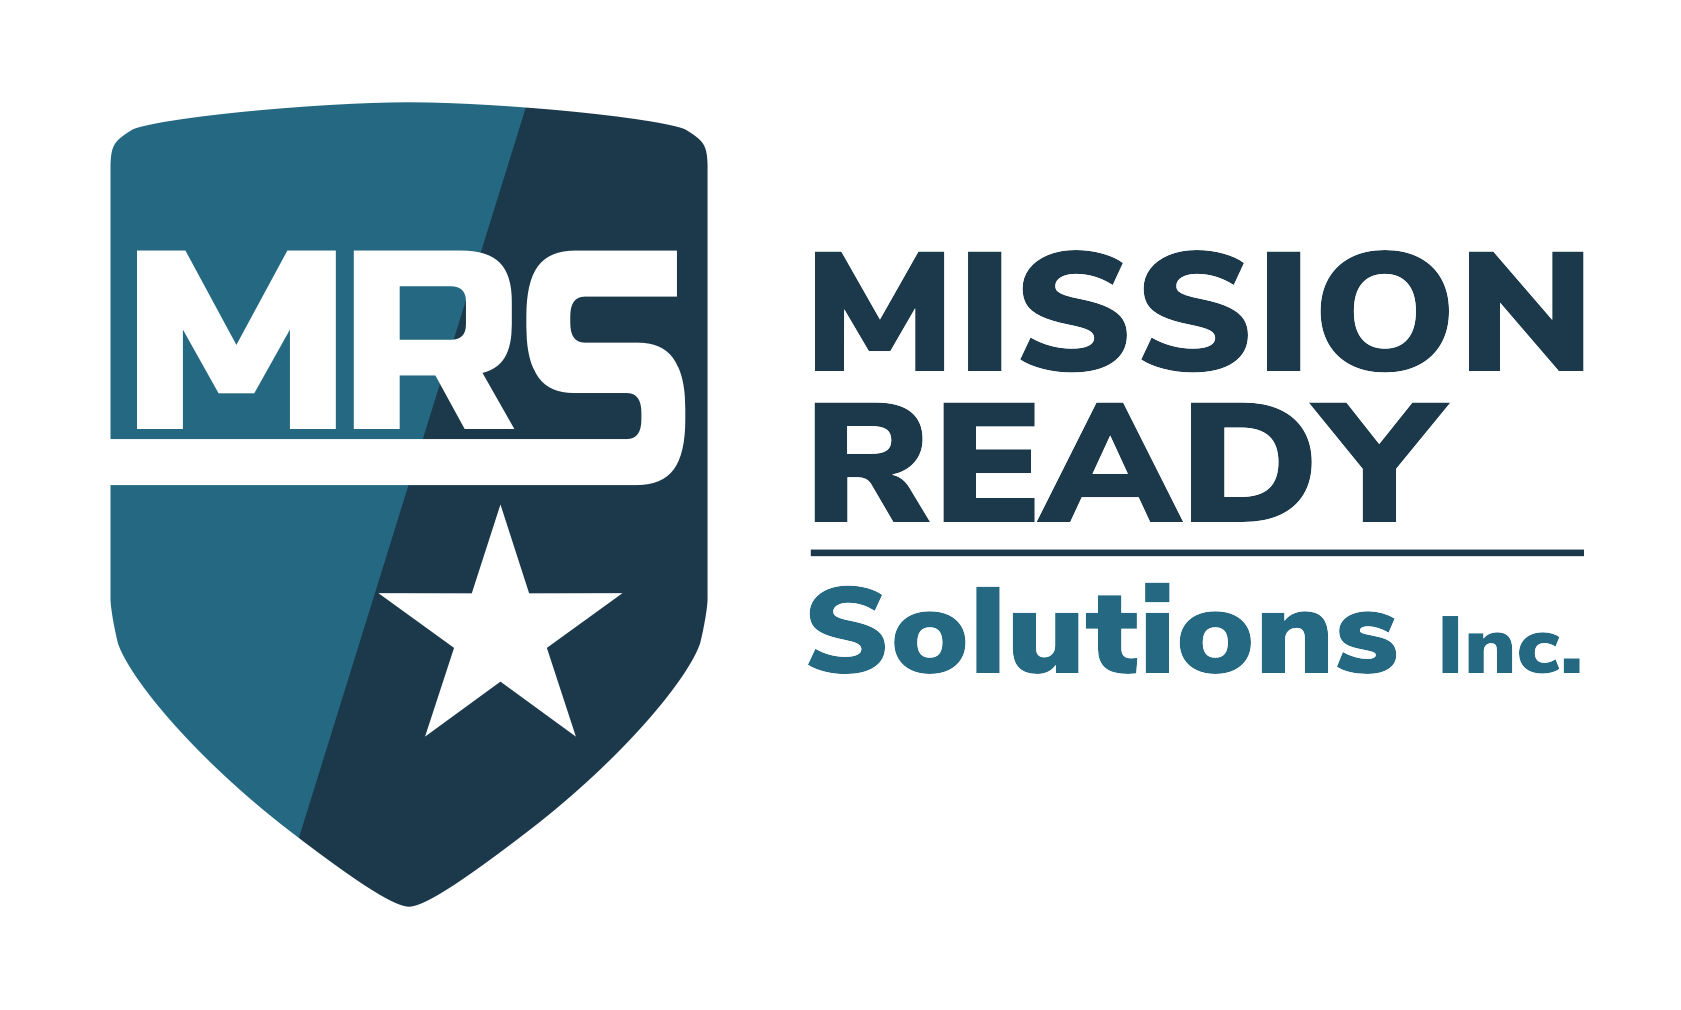 Mission Ready Provides Revenue Guidance, SOE Solicitation Update